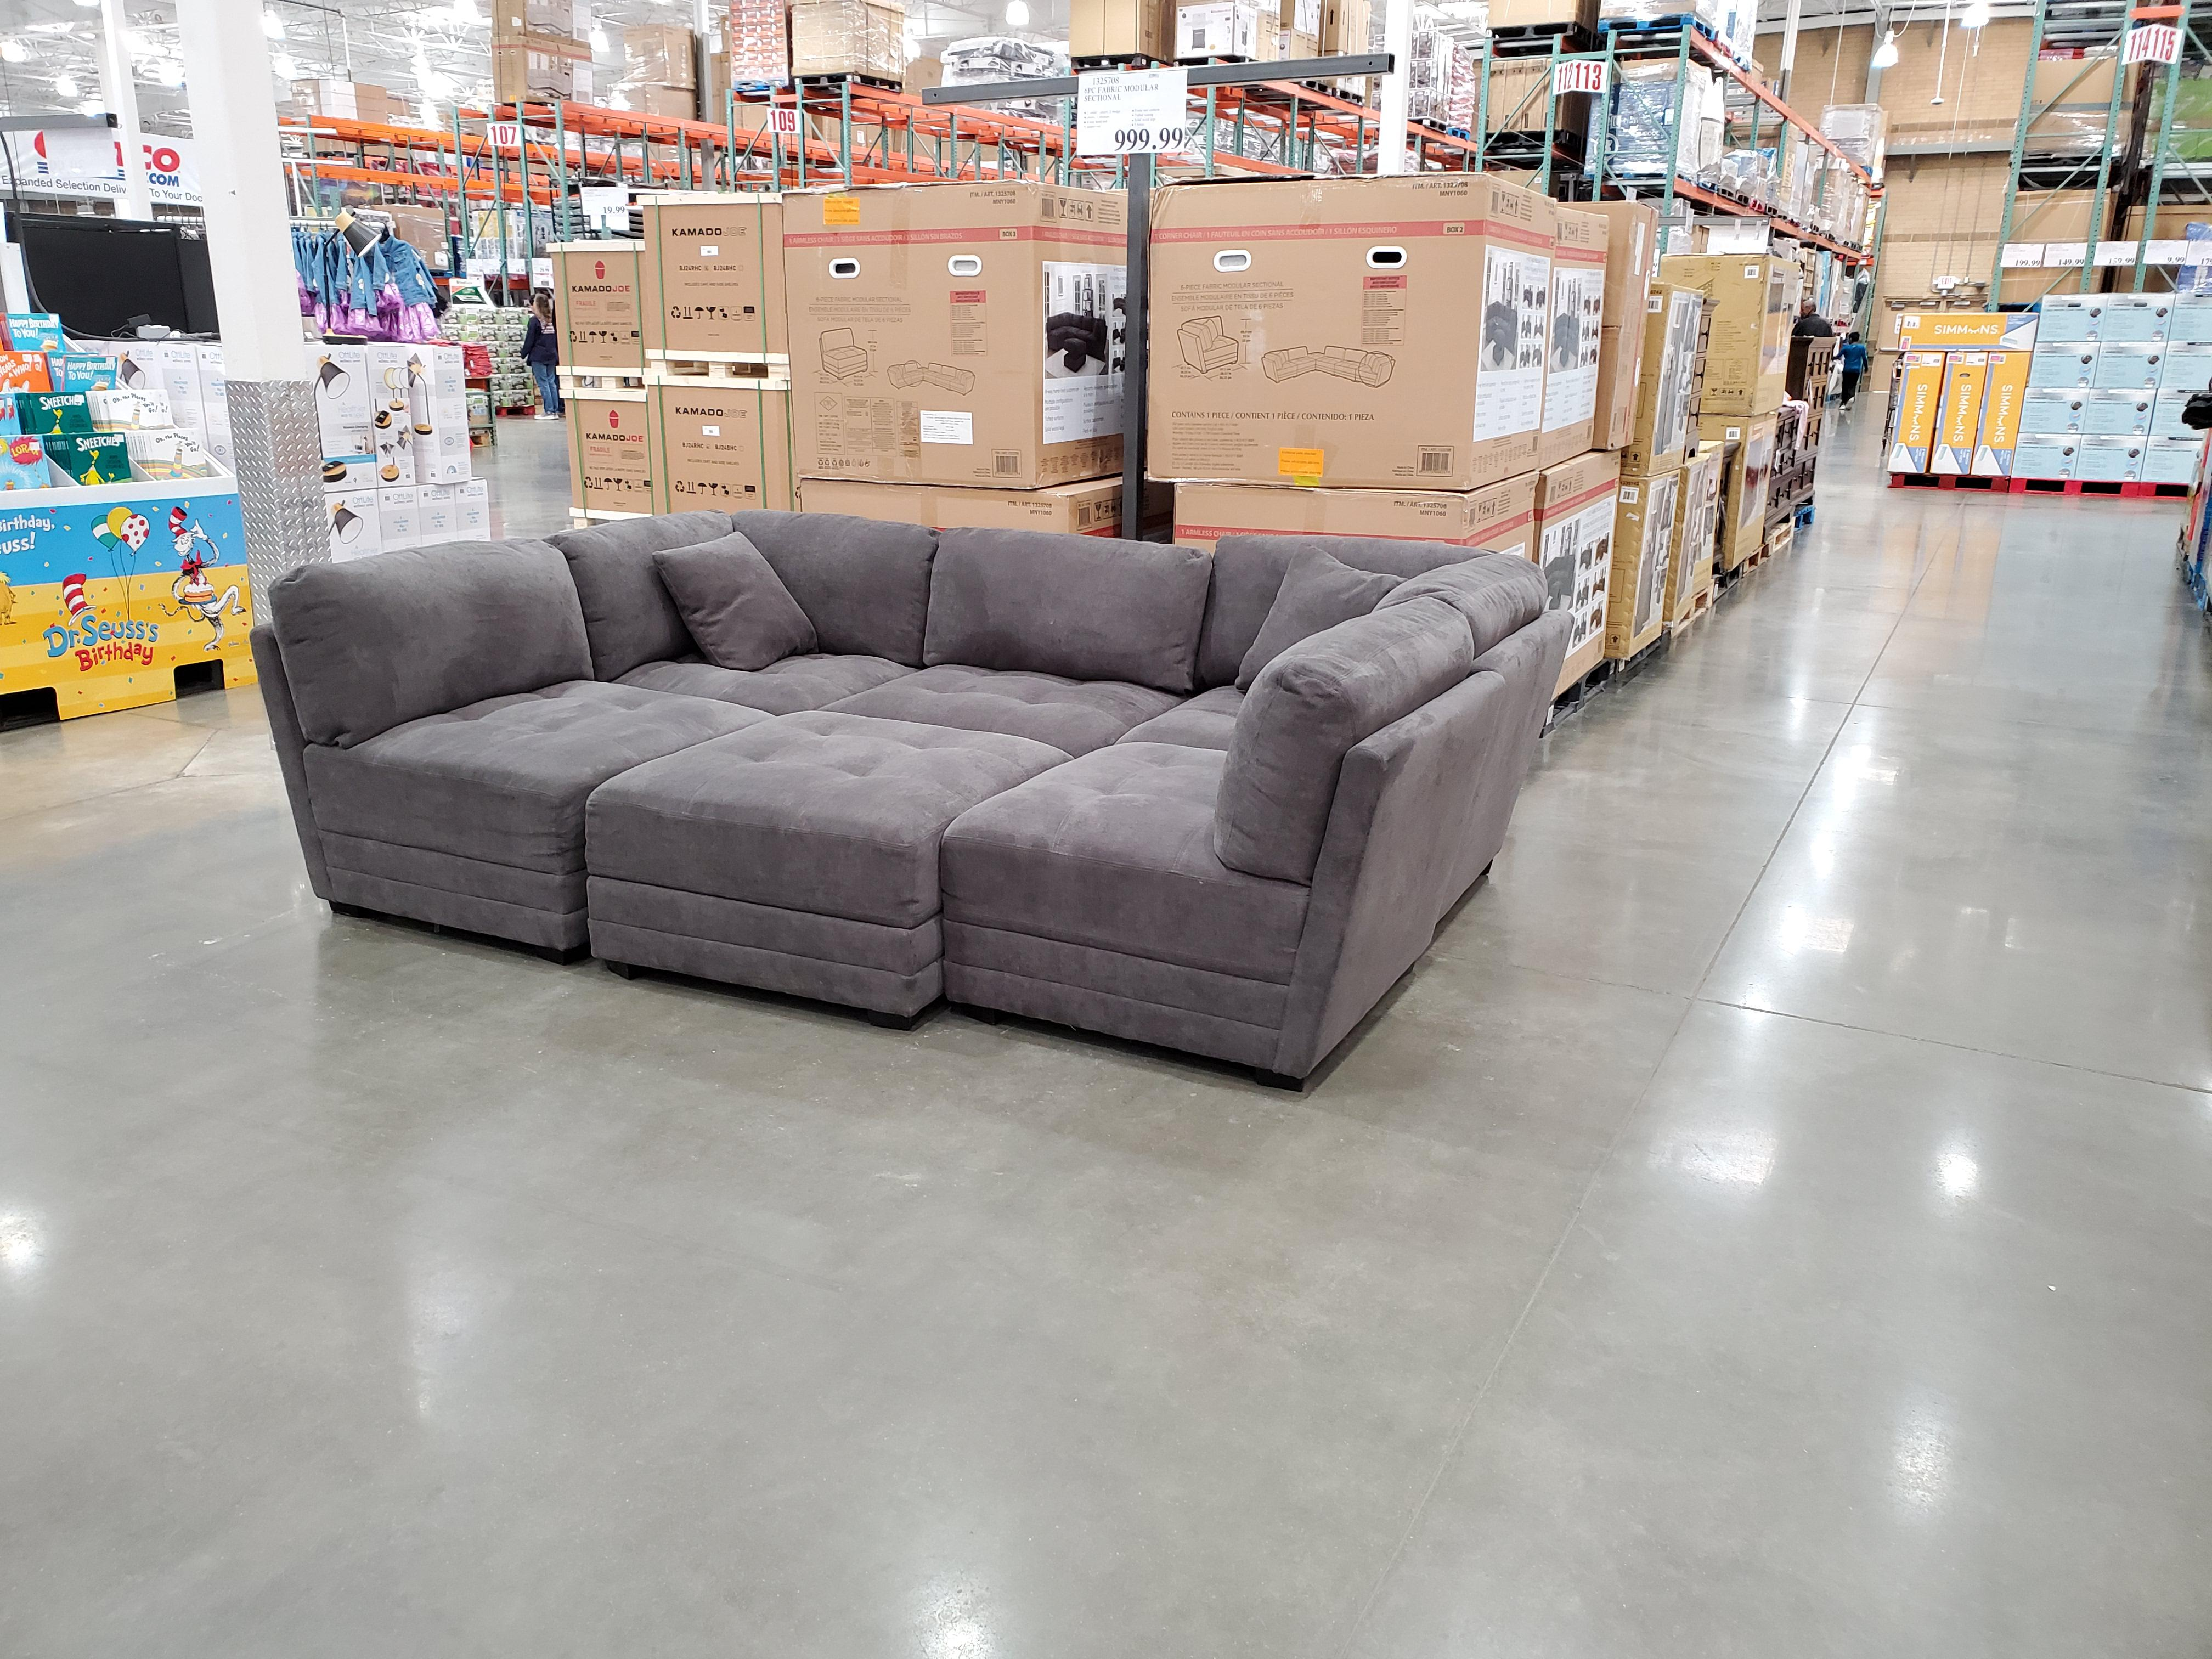 Anybody Have Any Experience With This Couch 999 99 My Fiancee And I Really Like It And It Goes With The Color Scheme Of Our Living Room Are Costco Couches Durable Costco